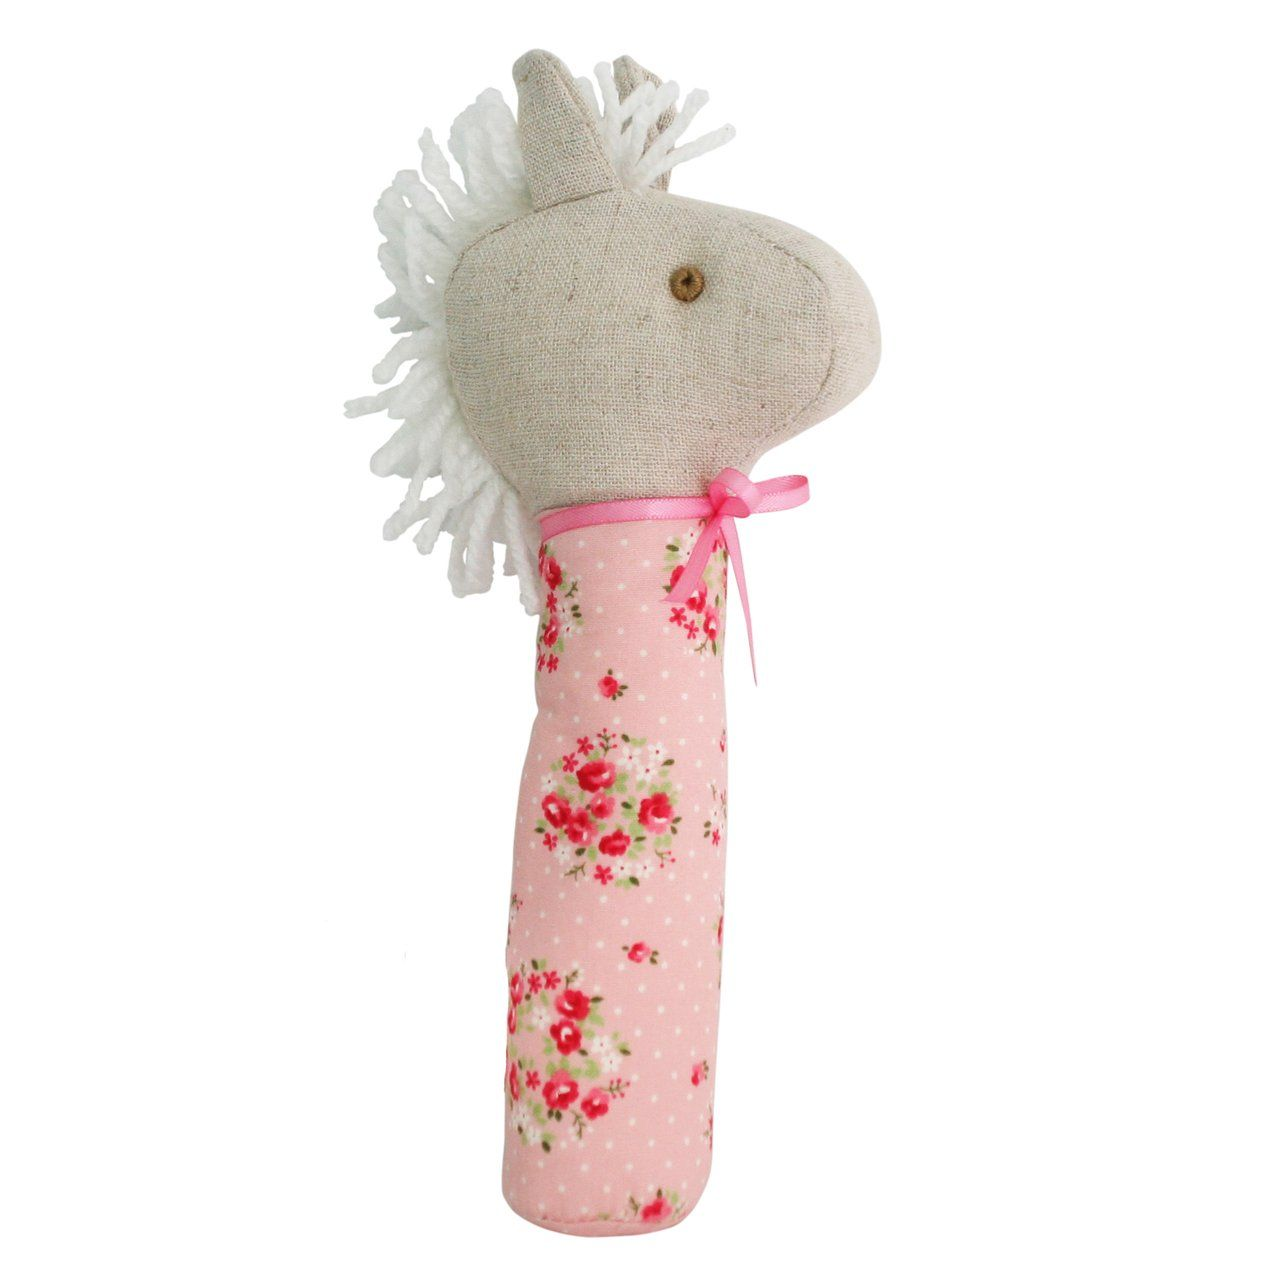 Horse Squeaker (Pink Floral Wreath)